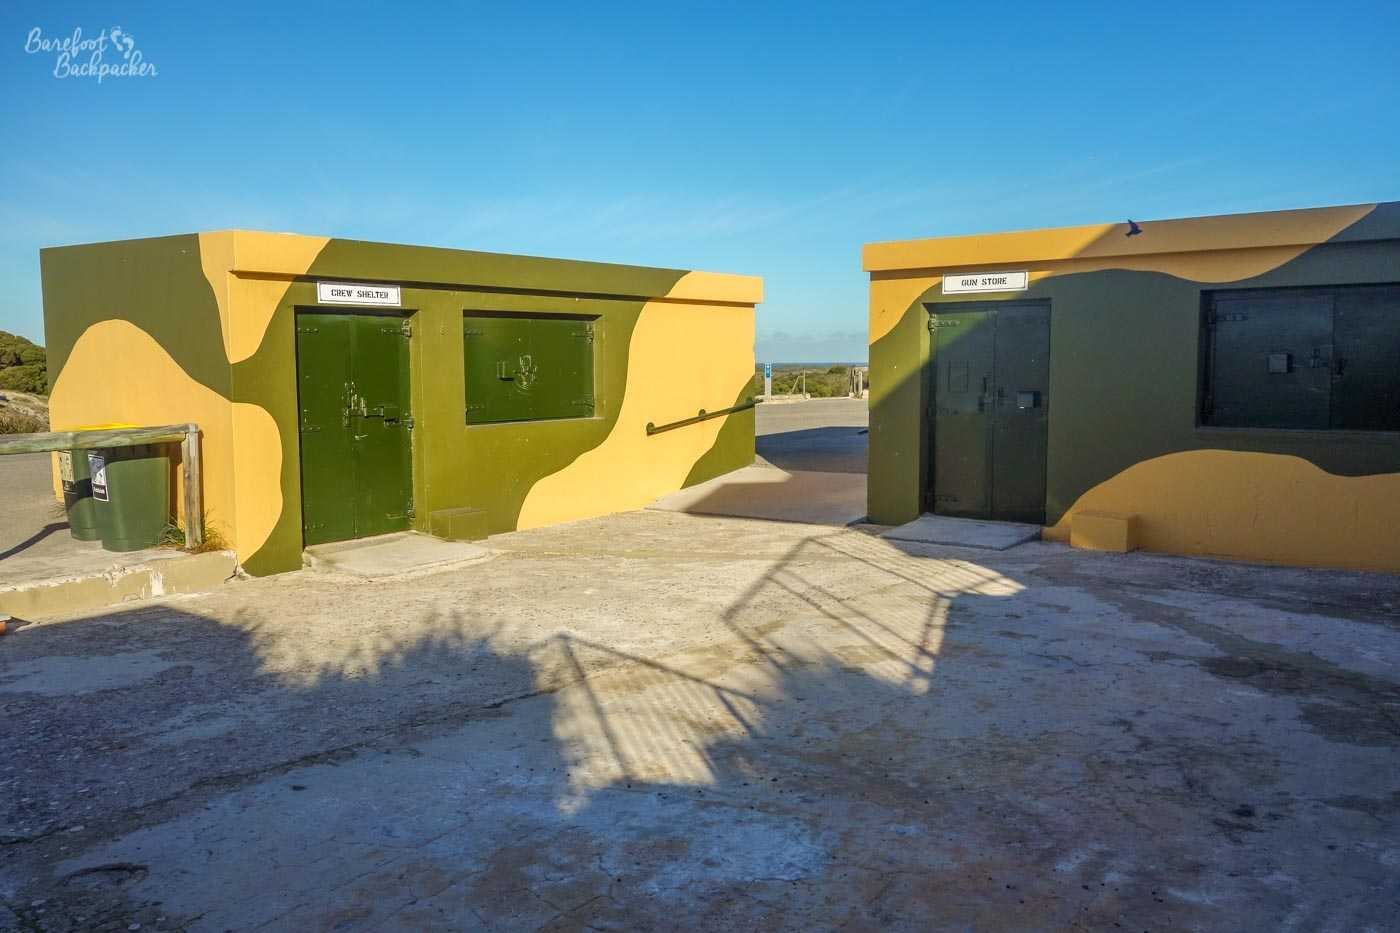 A couple of the buildings used for storage, maintenance, waiting around, etc, at Oliver's Battery. They're kind of camouflaged in yellow/grey decoration, which looks ... kinda odd atop a barren hill.